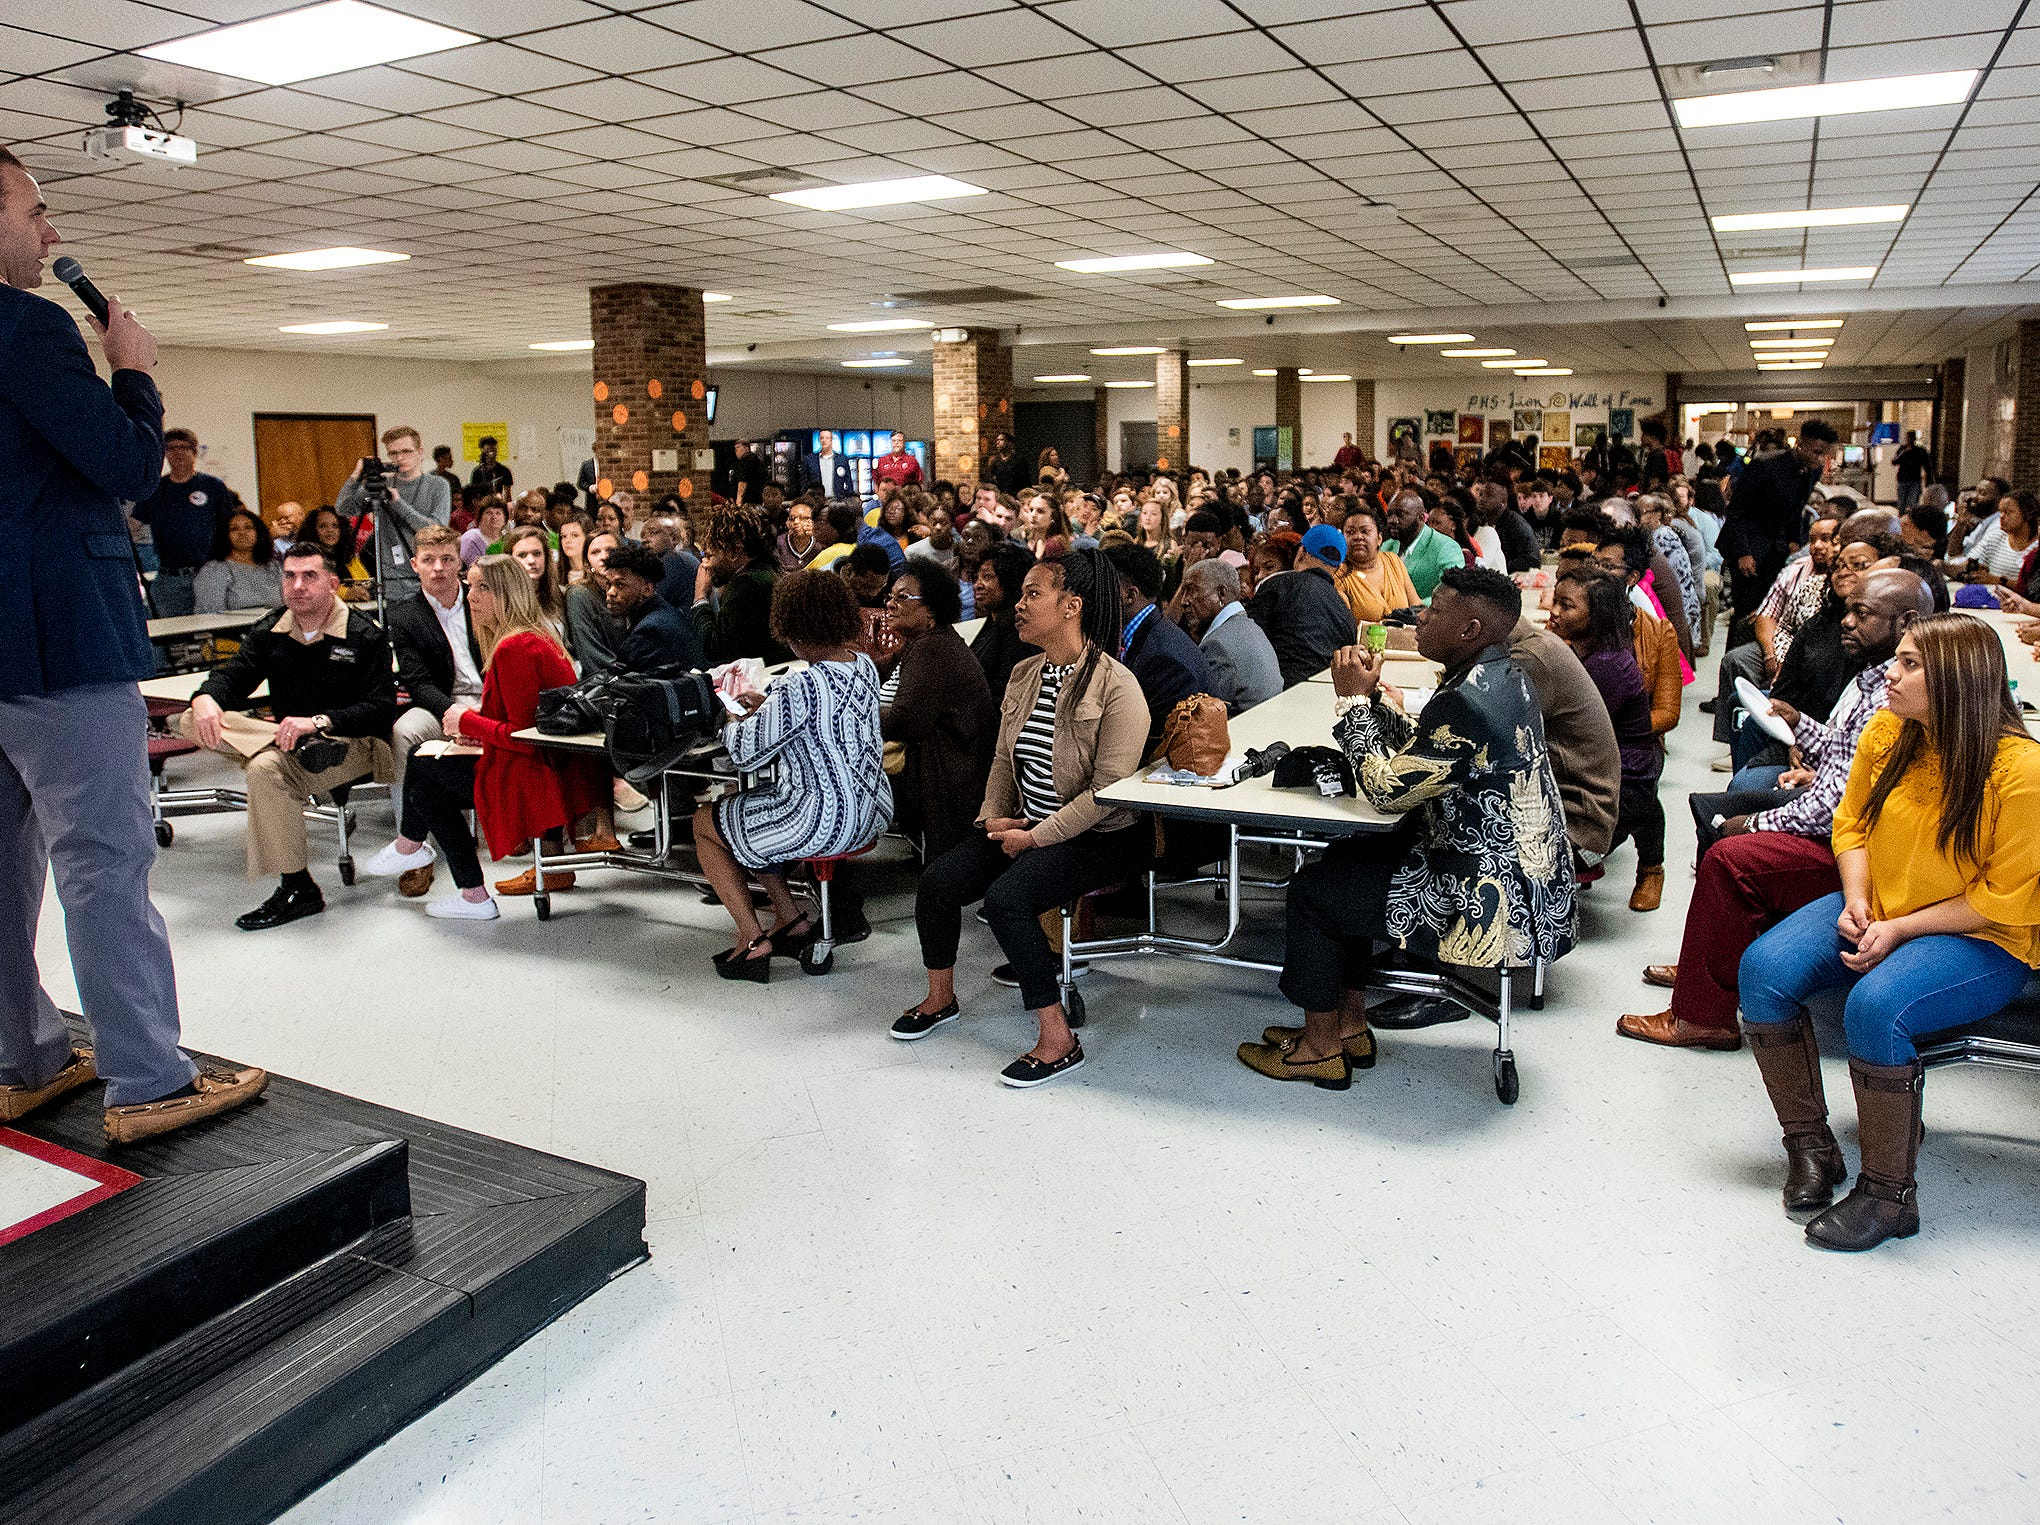 Prattville Head Football Coach Caleb Ross speaks to those attending college football signing day at the school's campus in Pratttville, Ala., on Wednesday February 6, 2019.